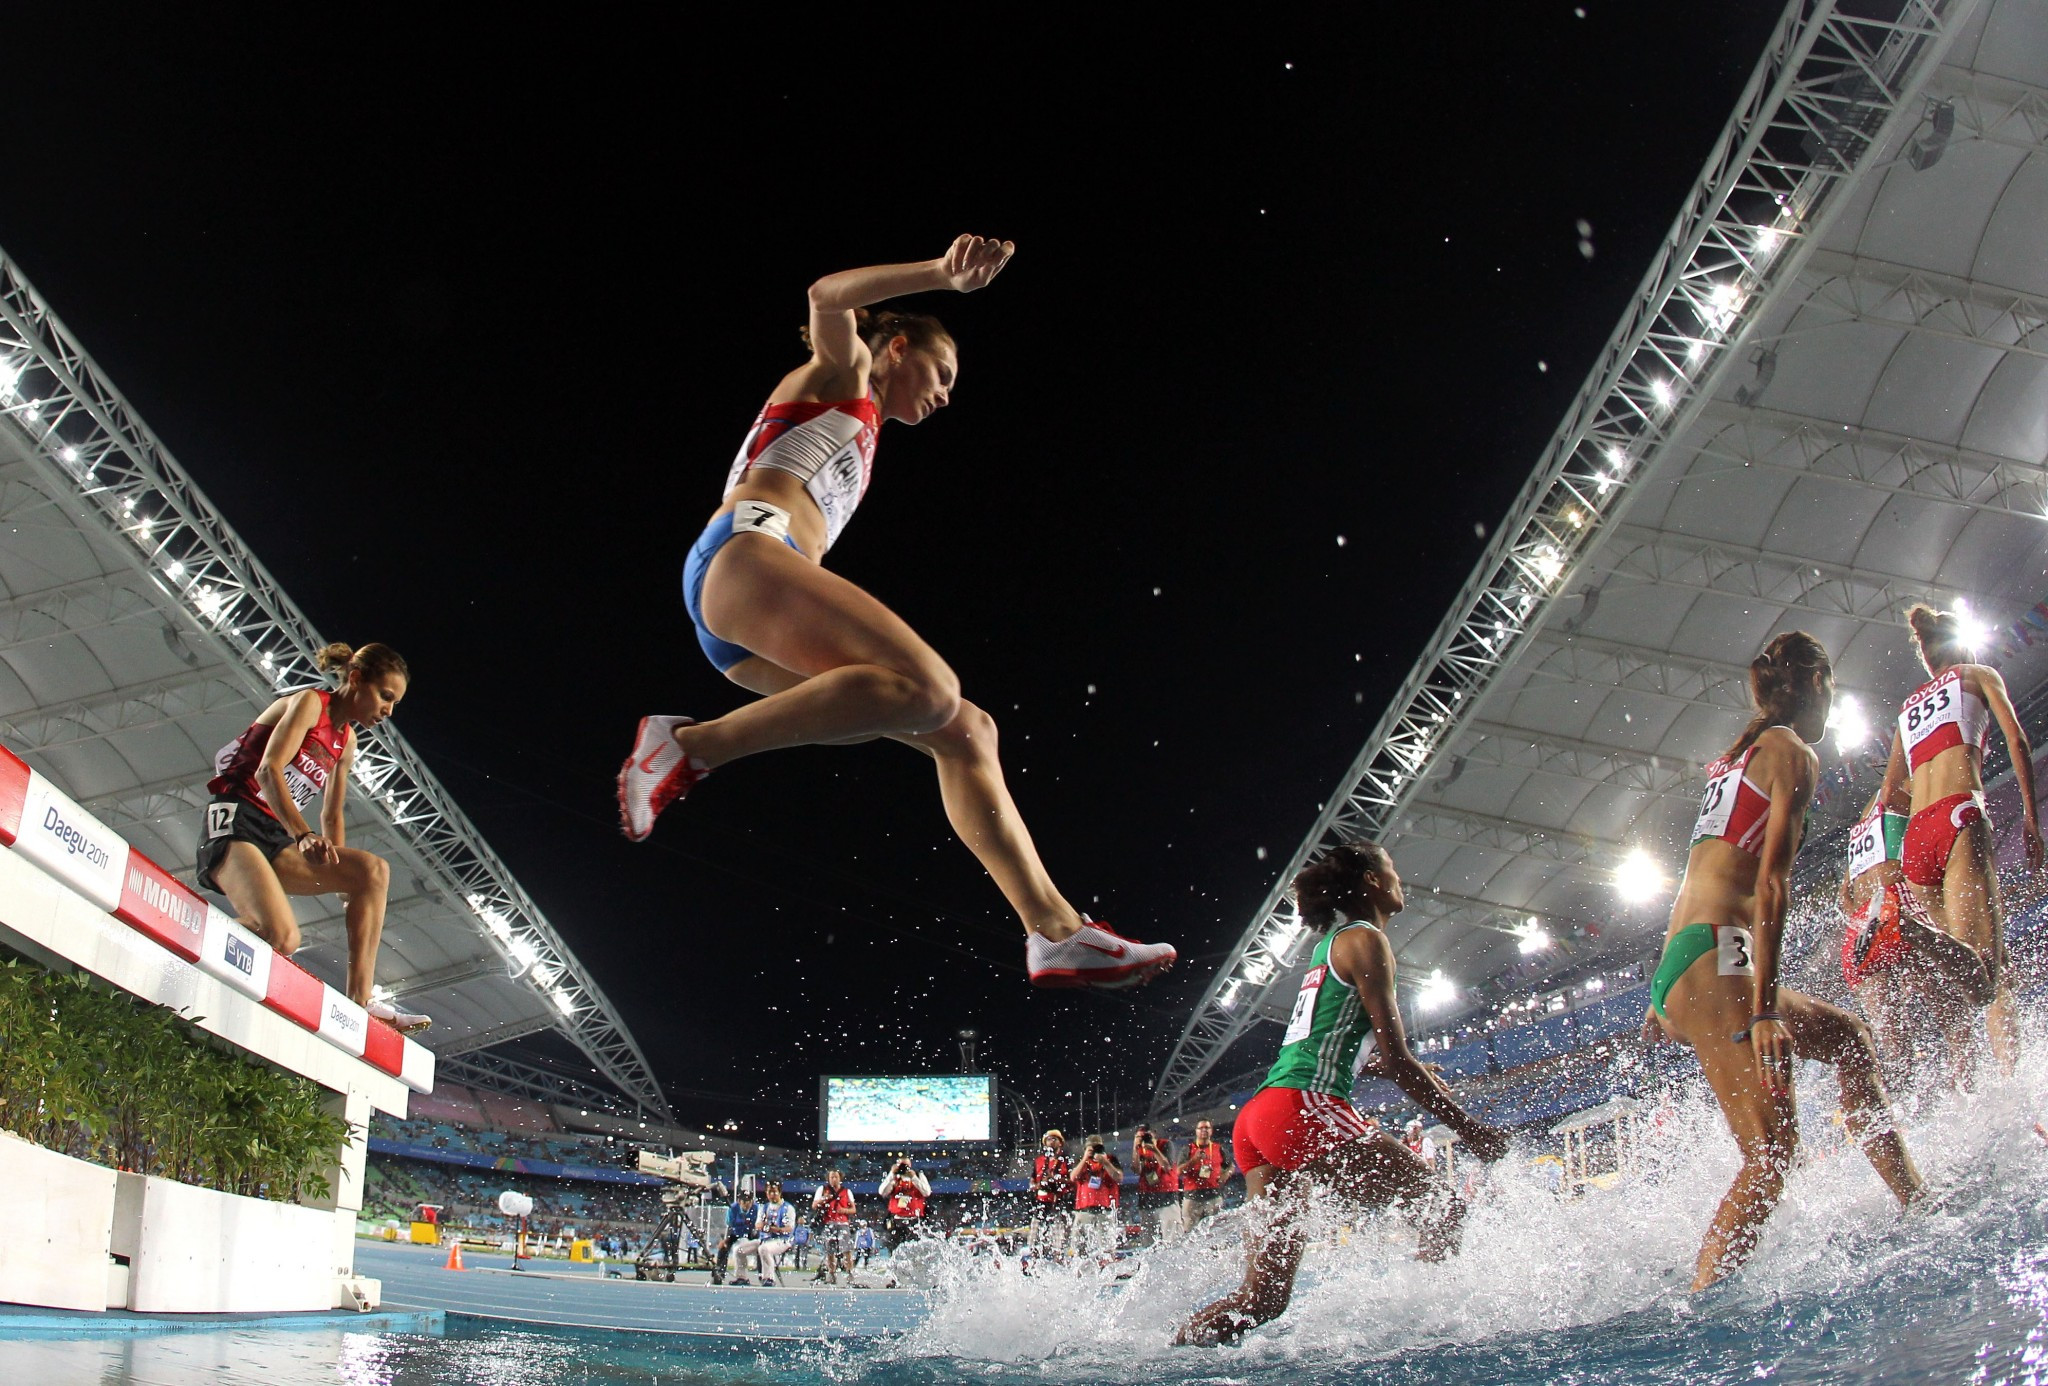 Lyubov Kharlamova also competed at the 2011 World Championships in Daegu in the 3,000m steeplechase ©Getty Images